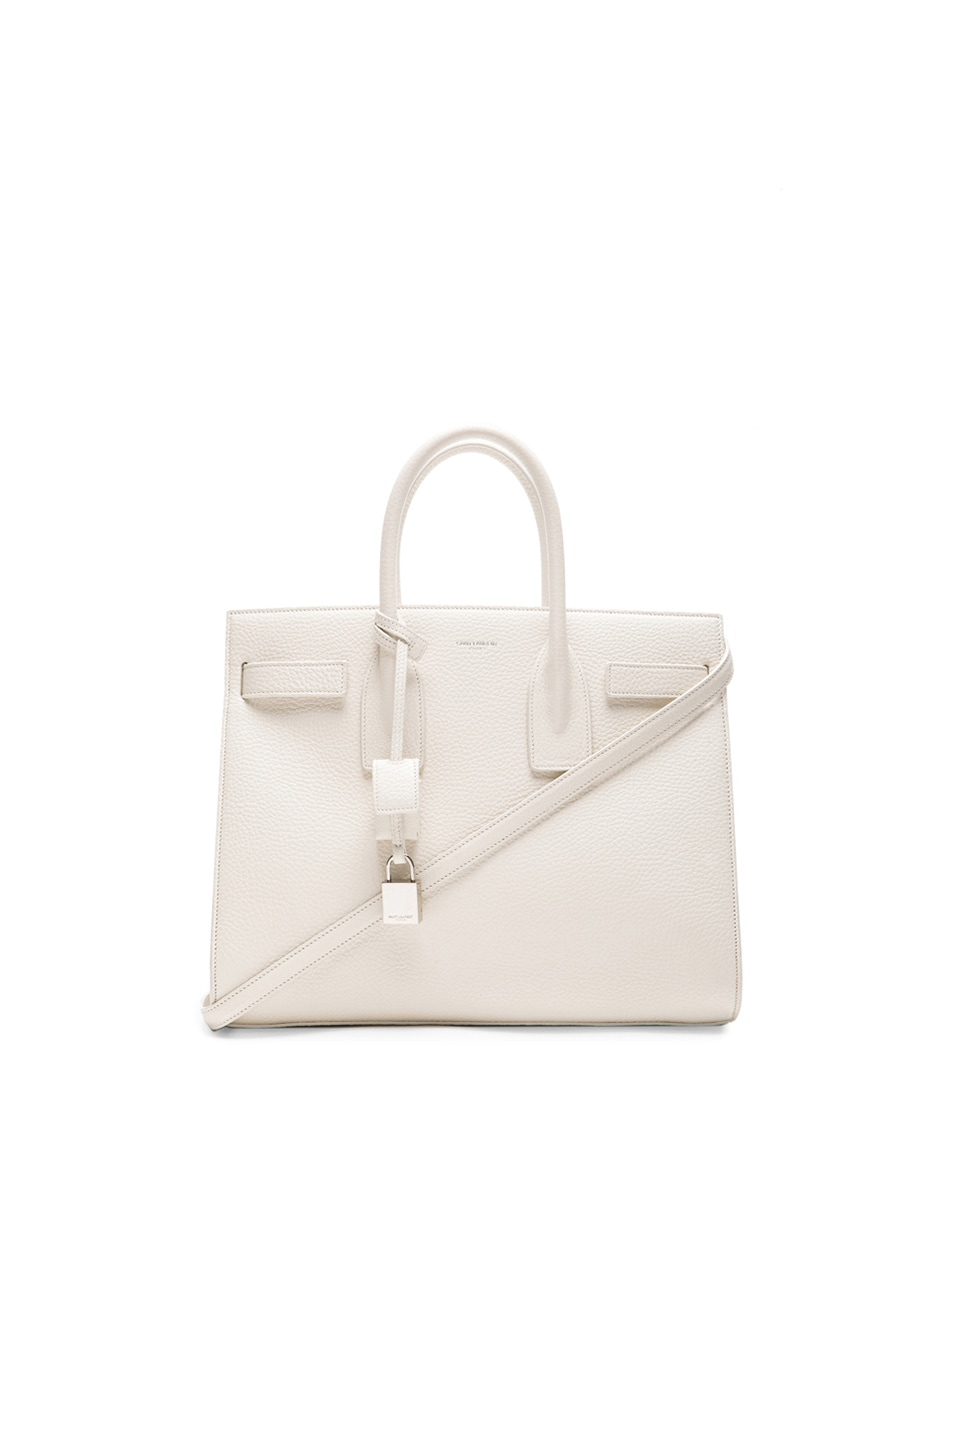 Image 1 of Saint Laurent Small Sac De Jour Carryall Bag in White